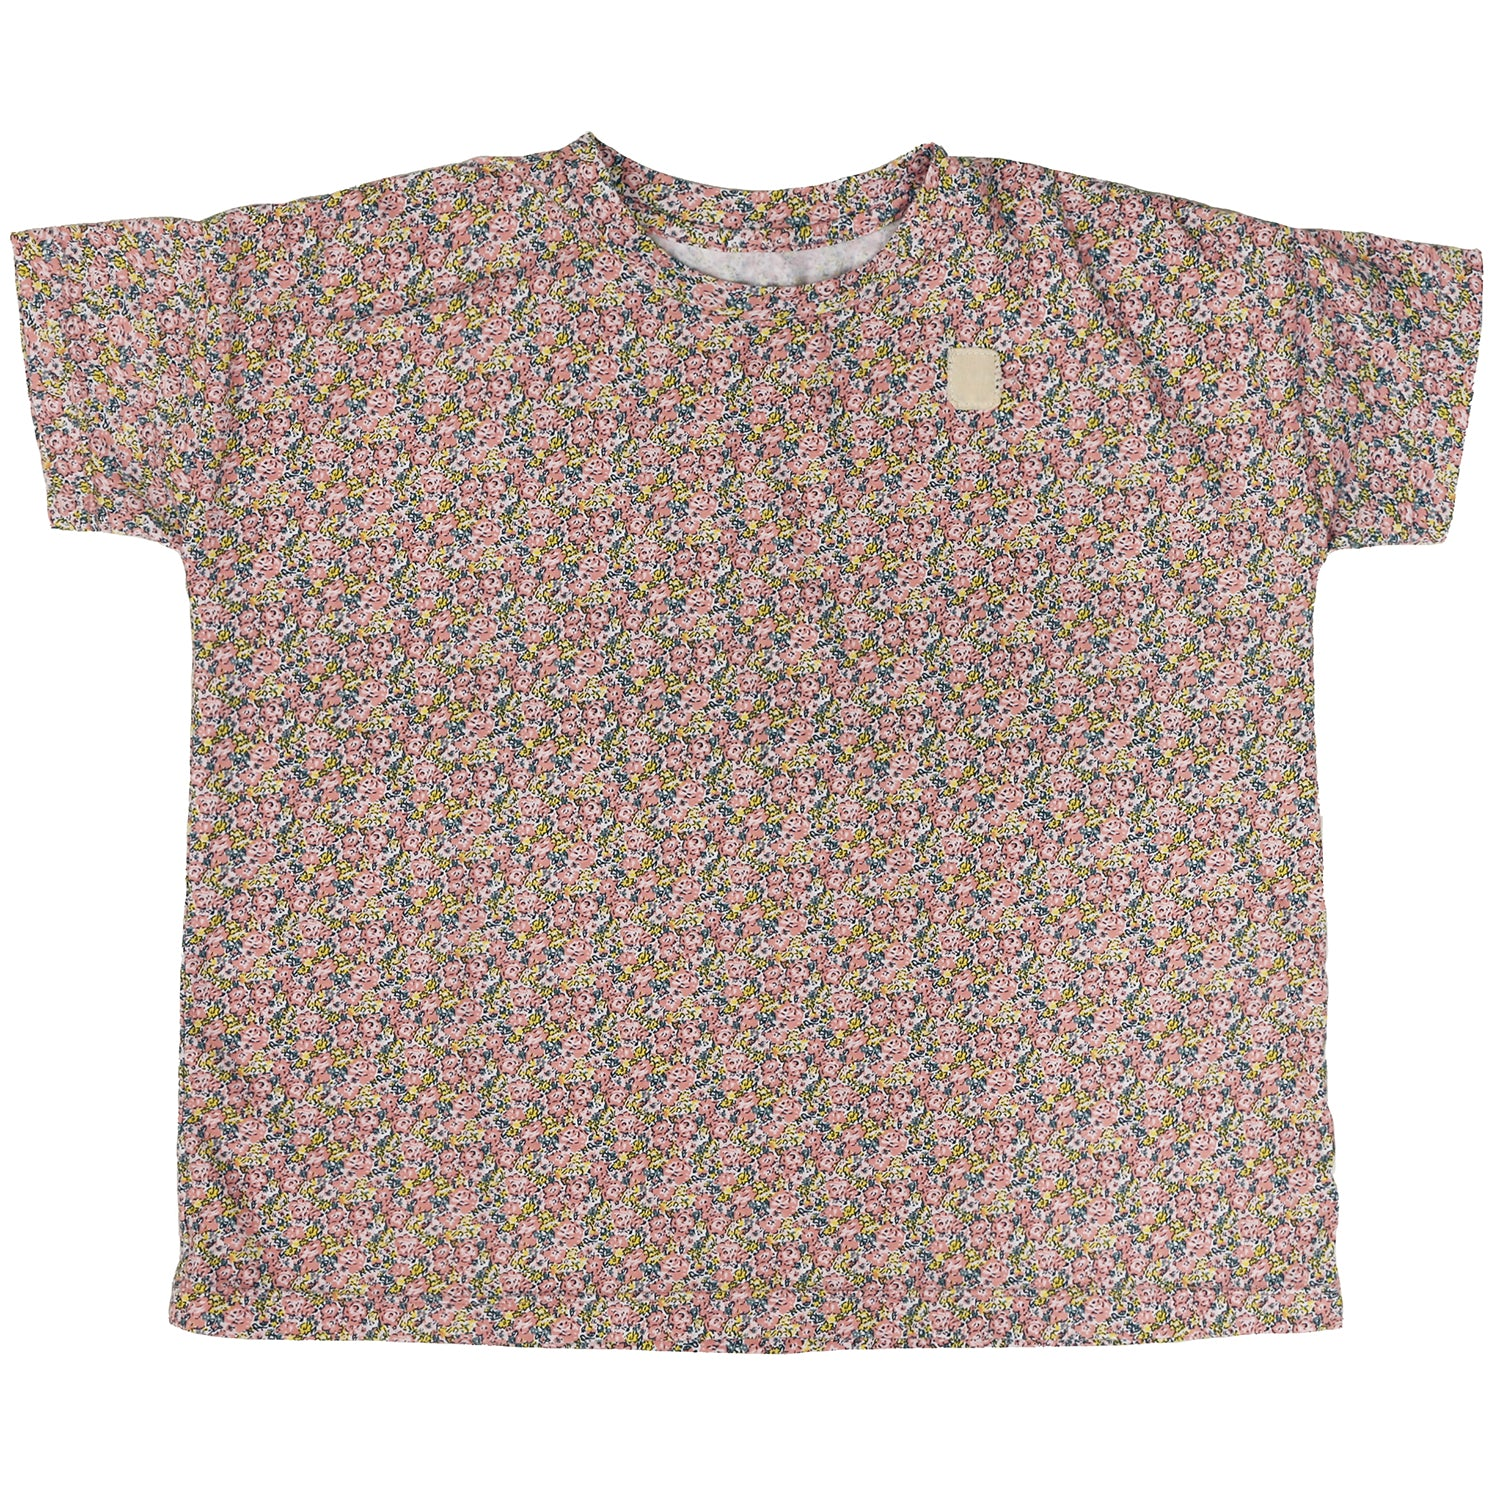 yoya, kids, girls, tambere, summer, lightweight, casual, lounge, floral print, short sleeved, tshirt